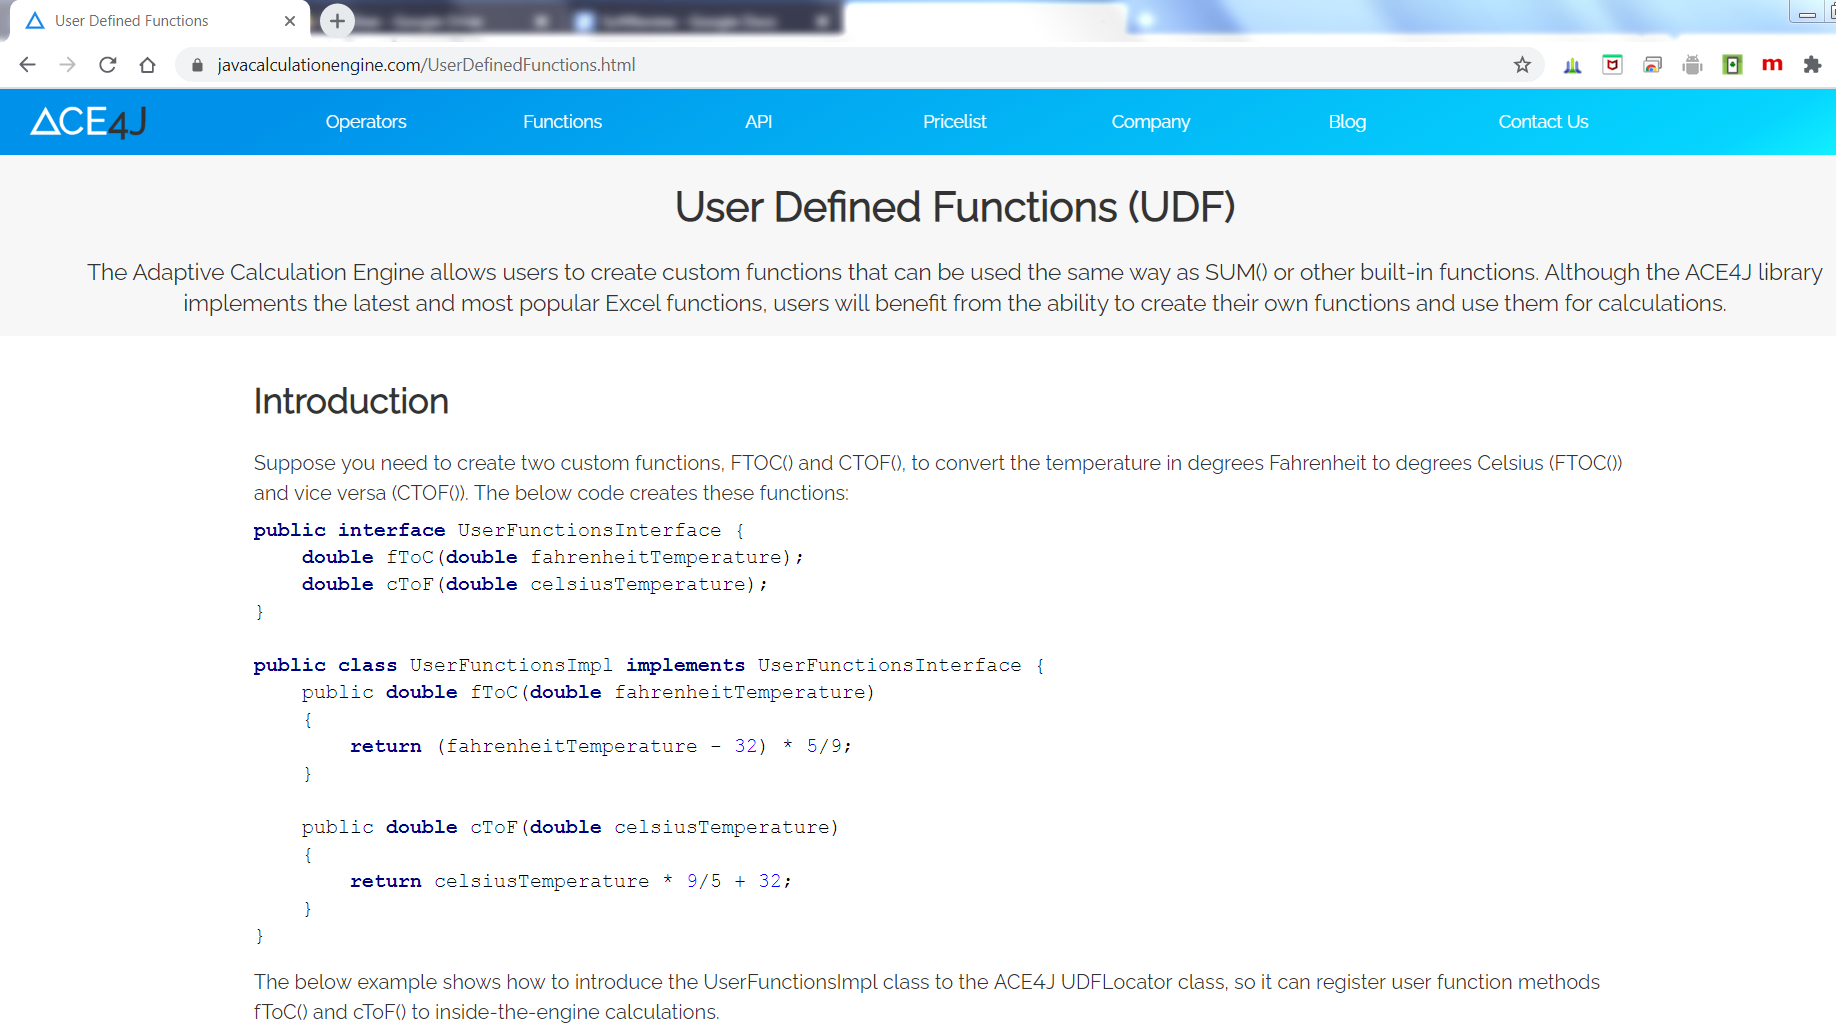 The ACE4J User Defined Functions (UDF)